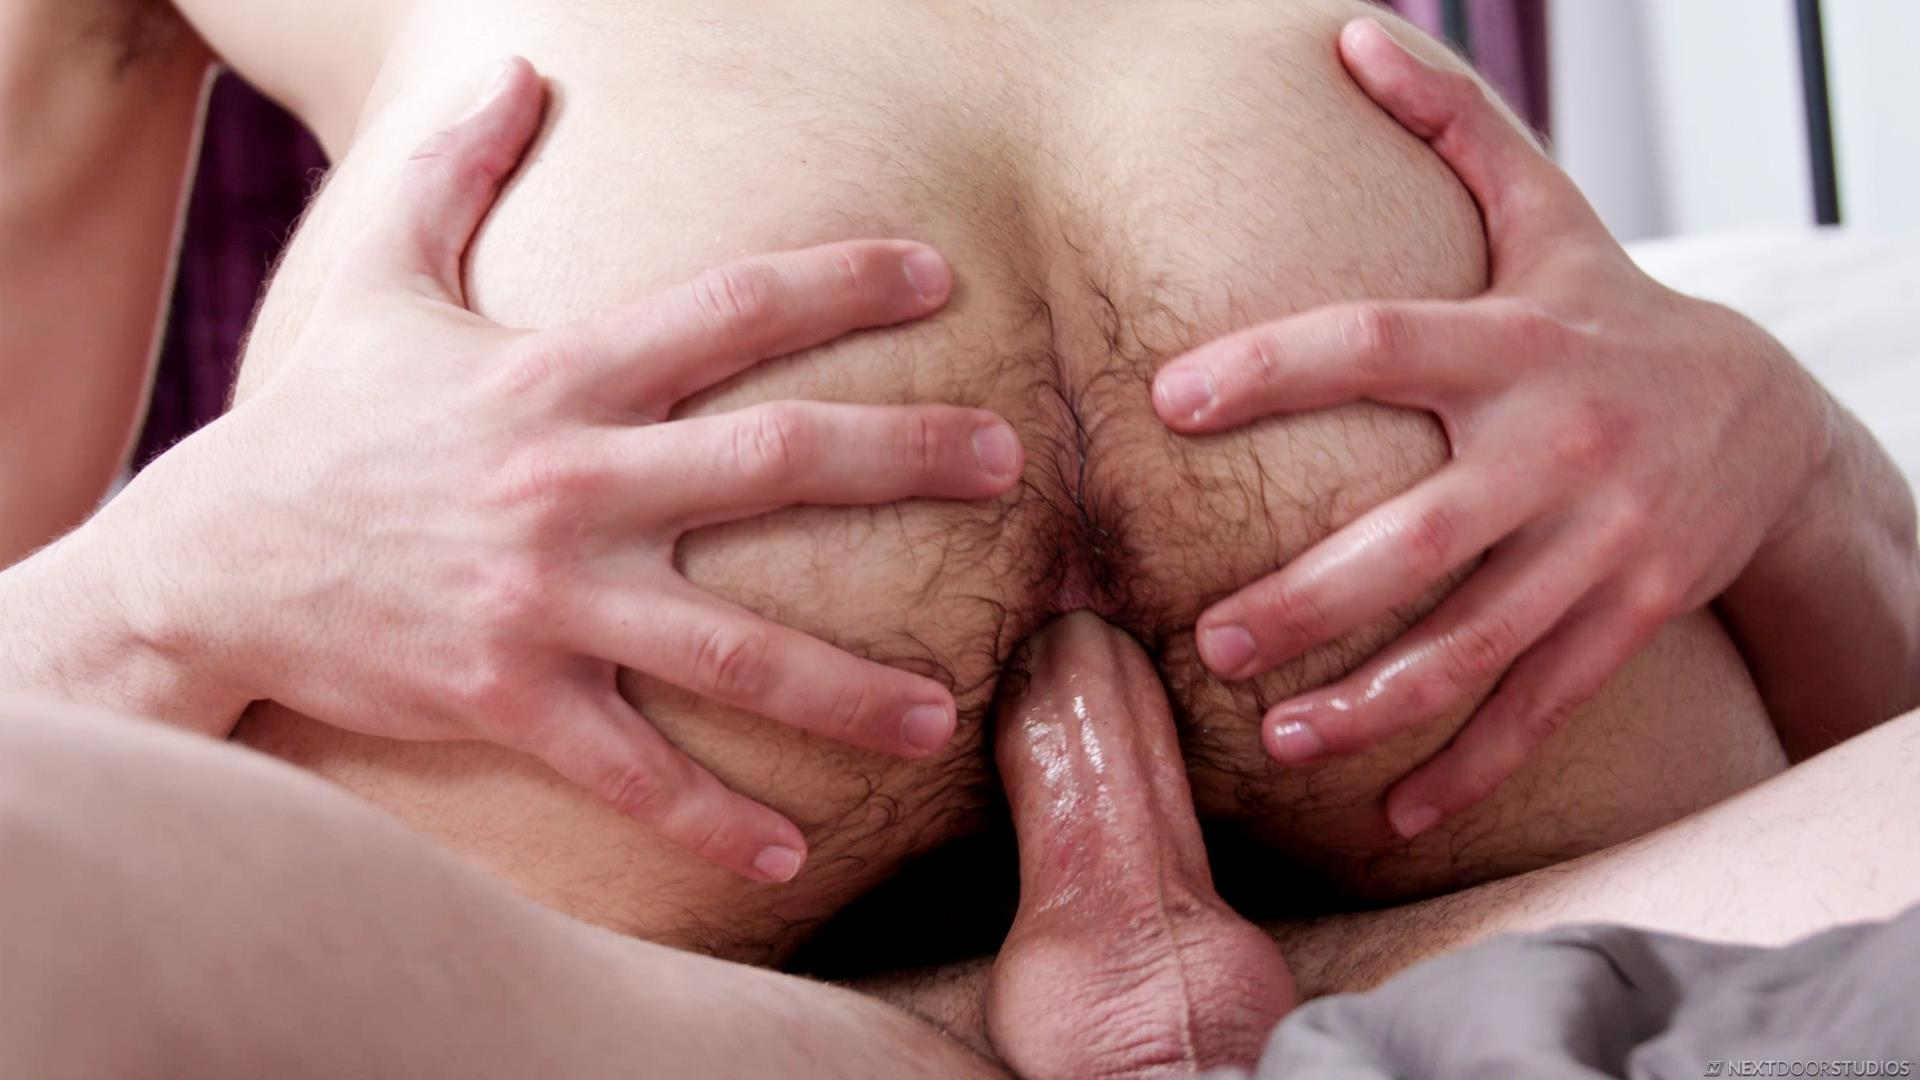 Next-Door-Studios-Johnny-Hill-and-Dante-Colle-Big-Dick-Hipsters-Bareback-Flip-Fucking-13 Bareback Flip Fucking With Big Dick Hipster Johnny Hill and Dante Colle